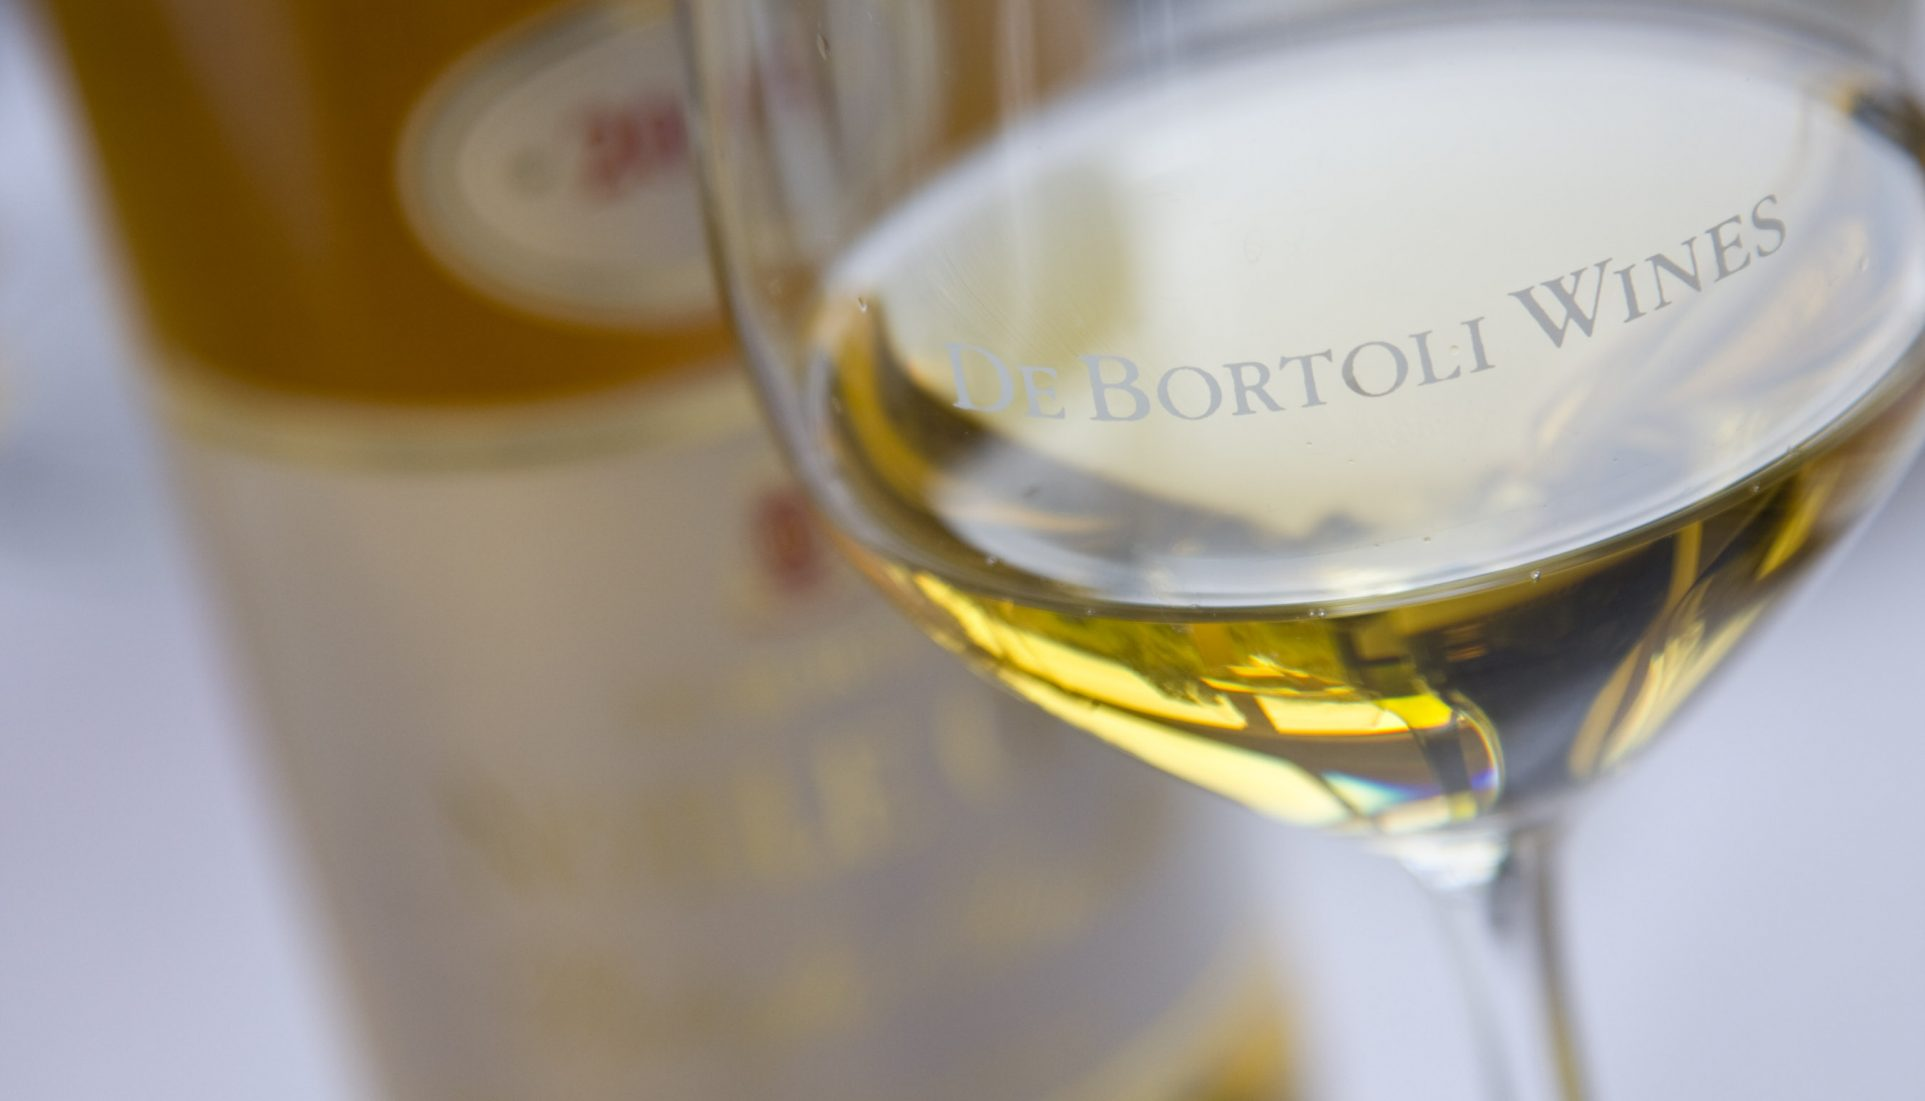 de bortoli noble one wine